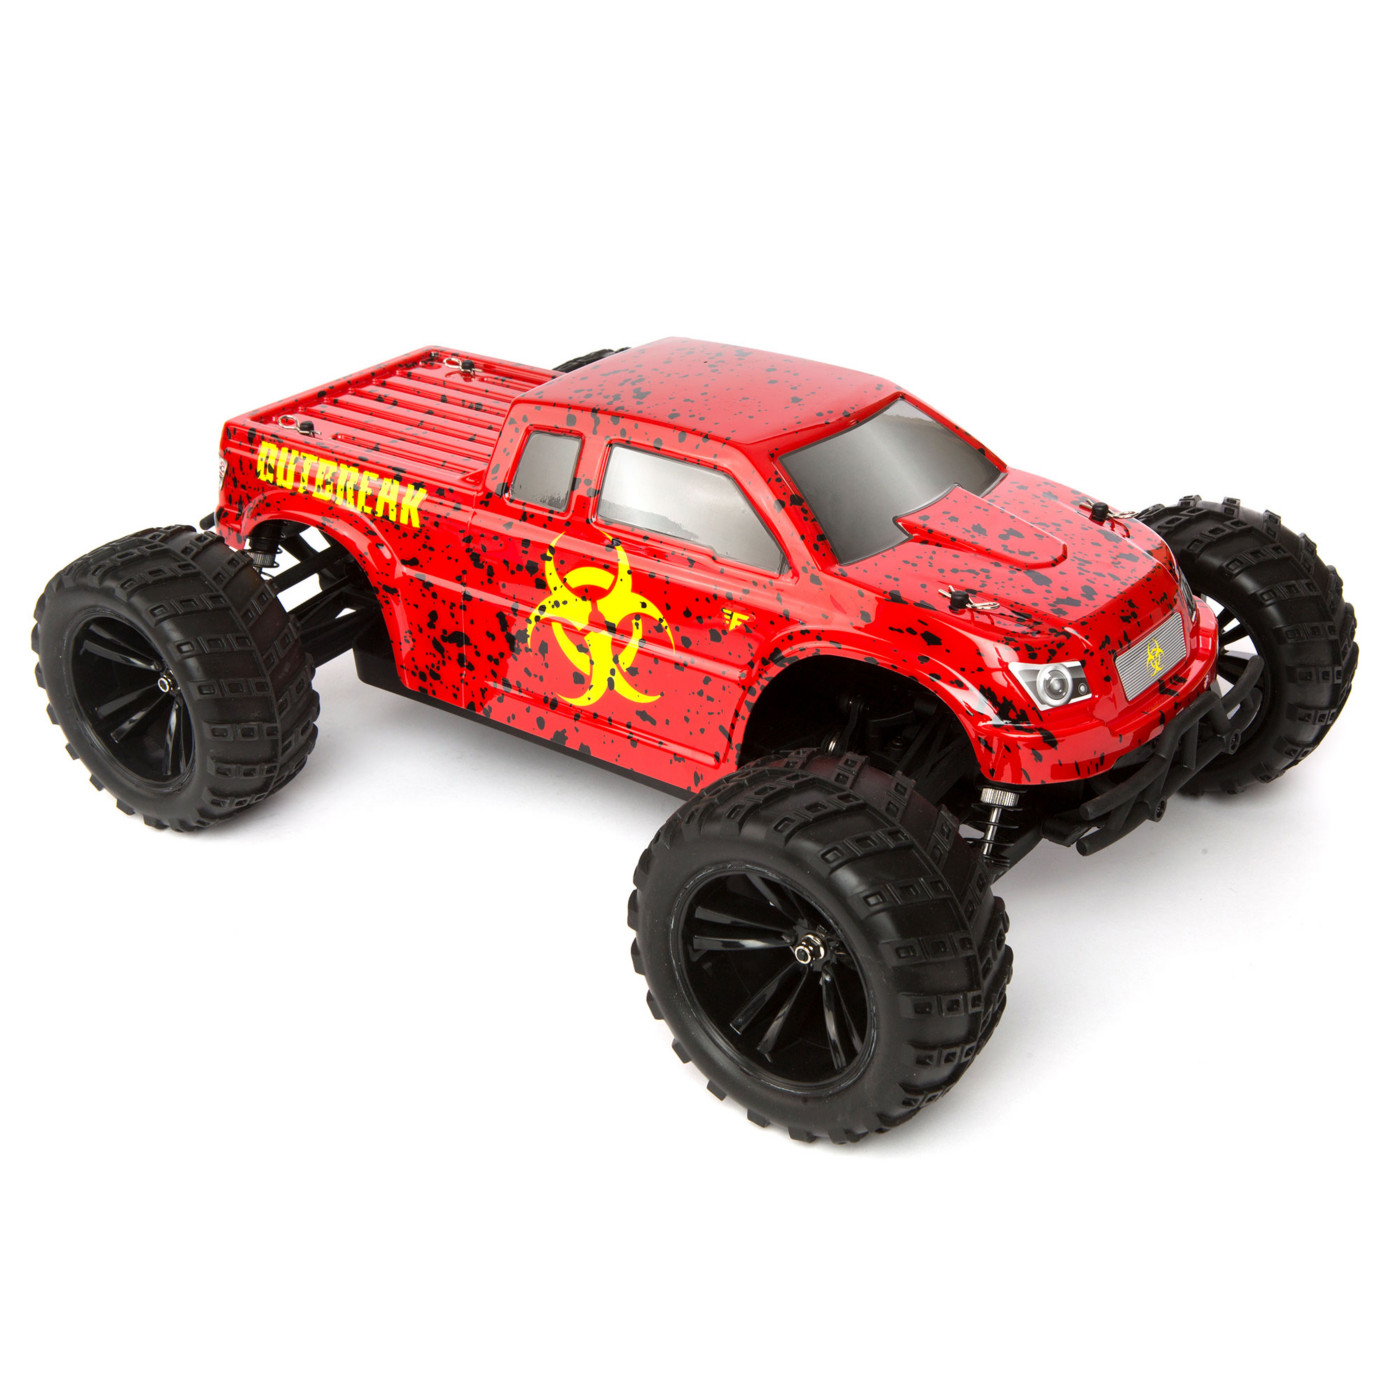 Force RC 1/10 Outbreak RTR 4WD Monster Truck